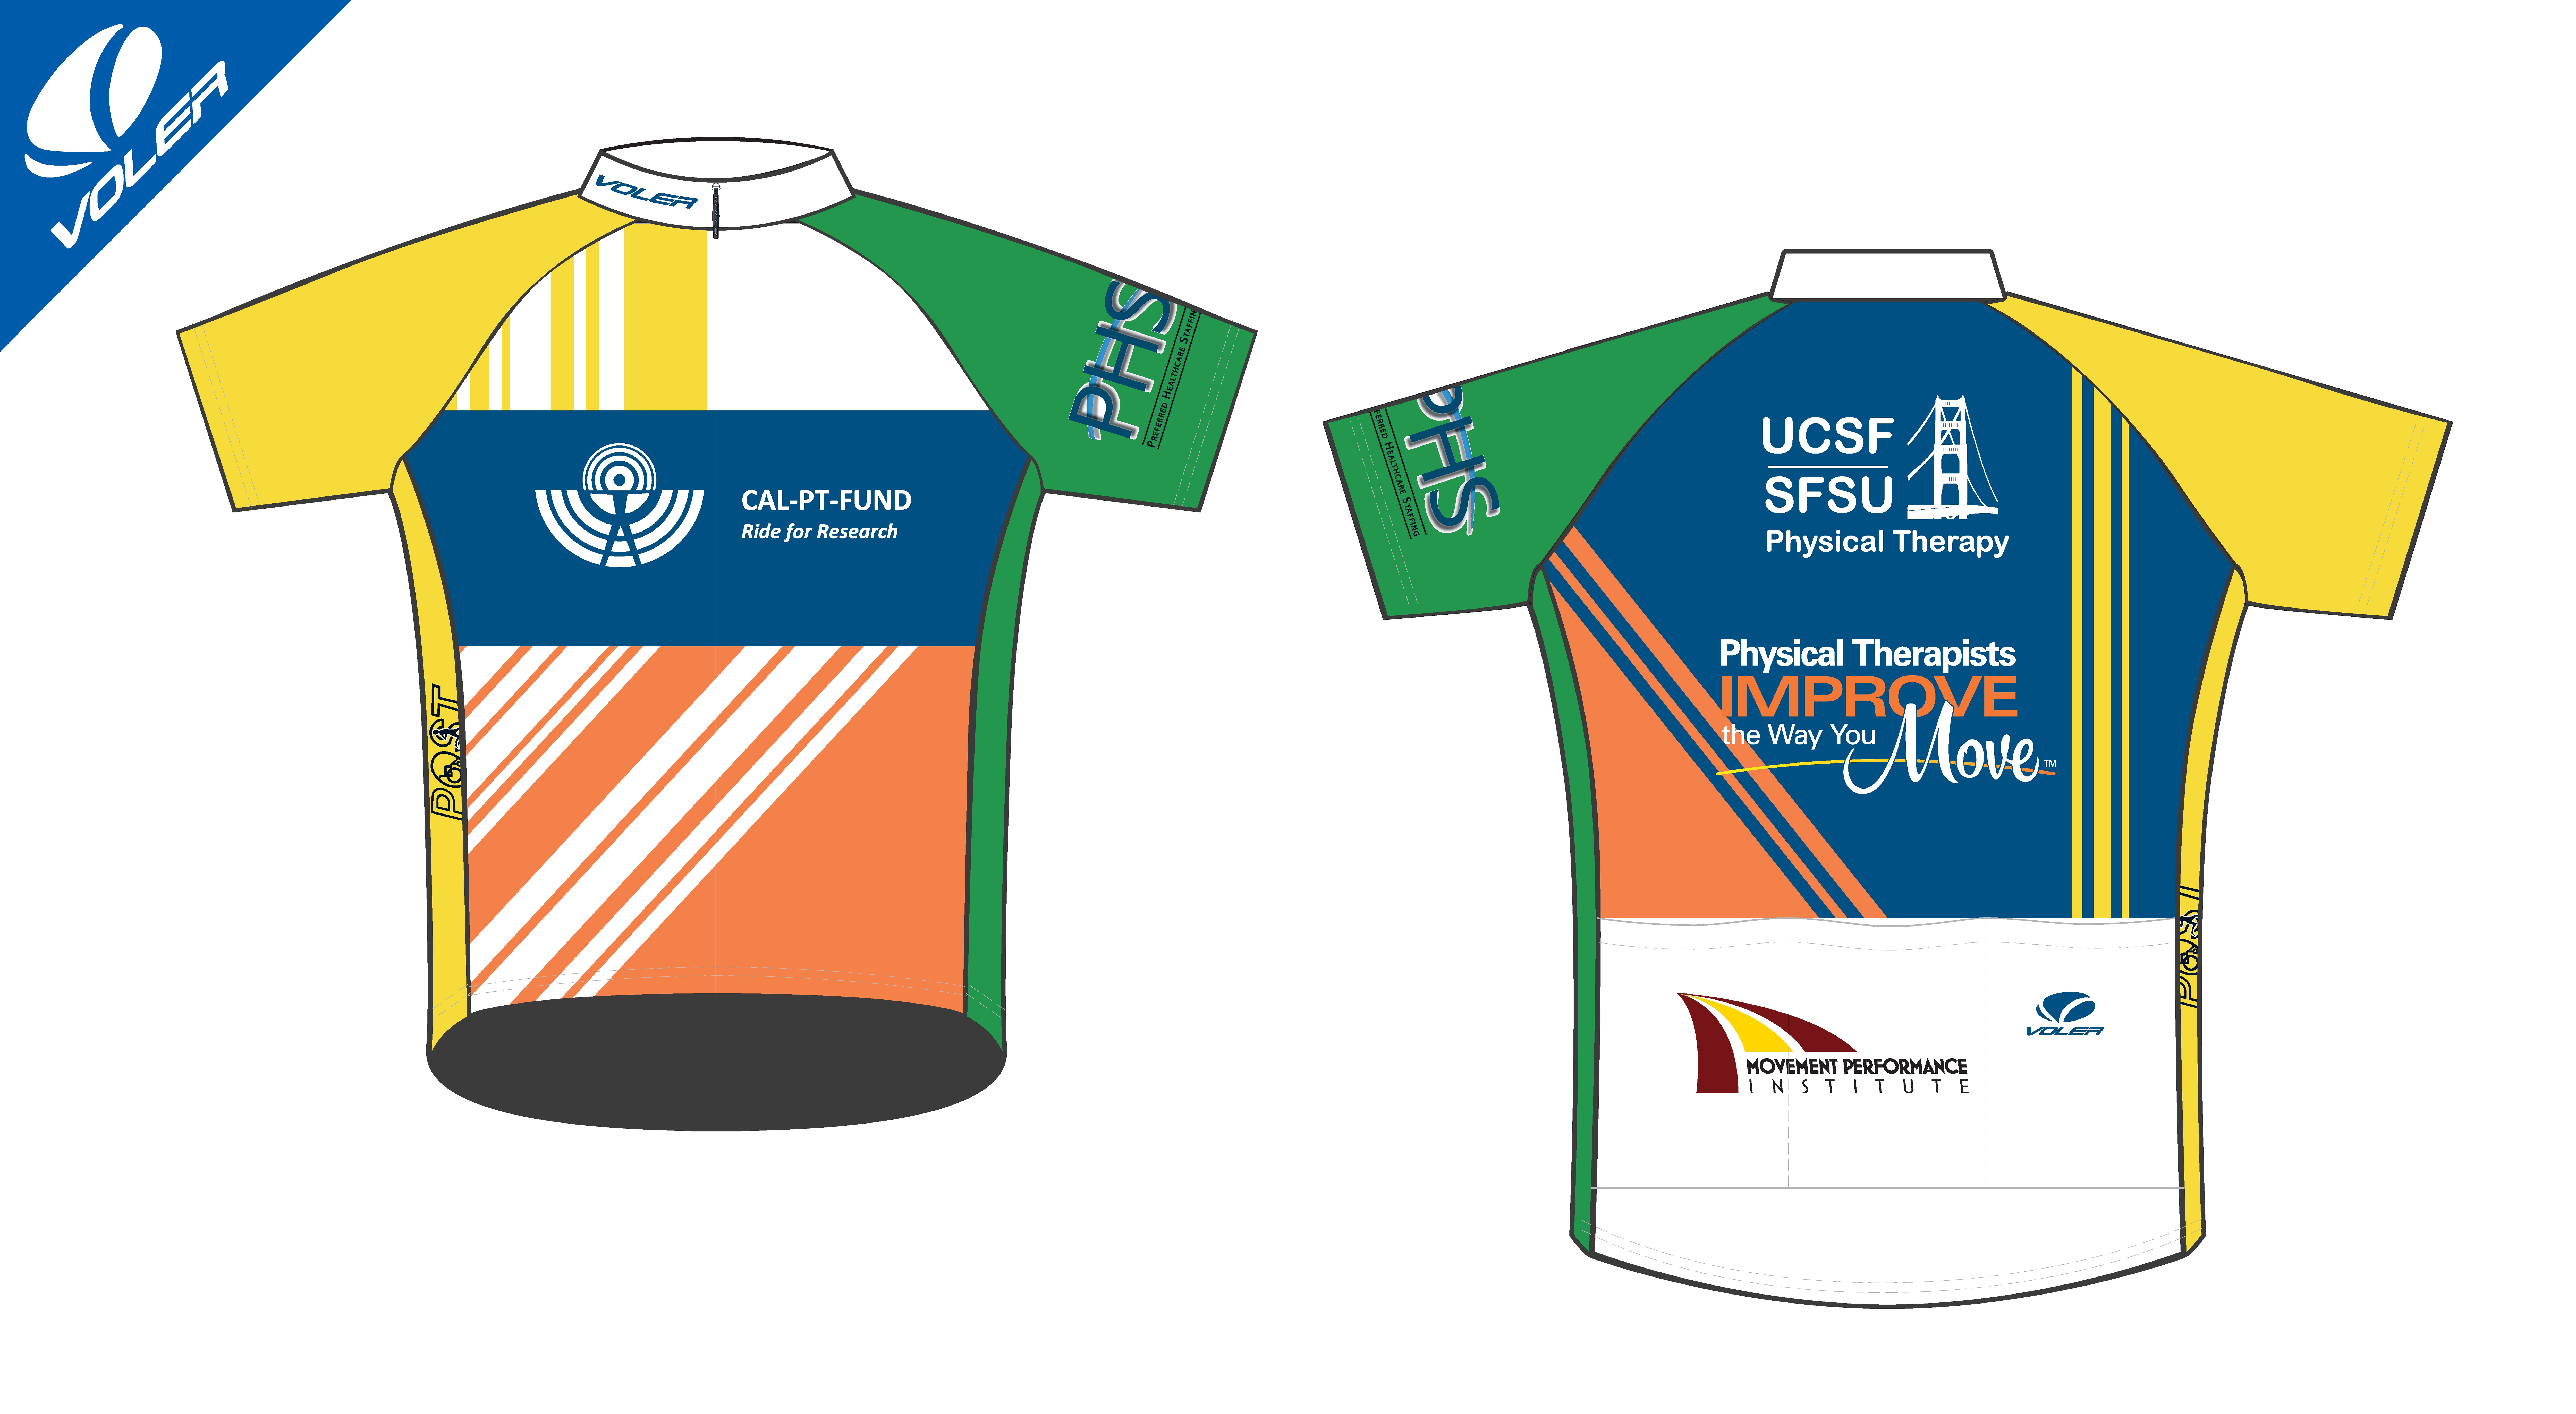 California board of physical therapy - Visit The Cpta Merchandise Store To Purchase An All New Cycling Jersey For Just 80 These Are High Quality Jerseys By Voler And Made In The Usa